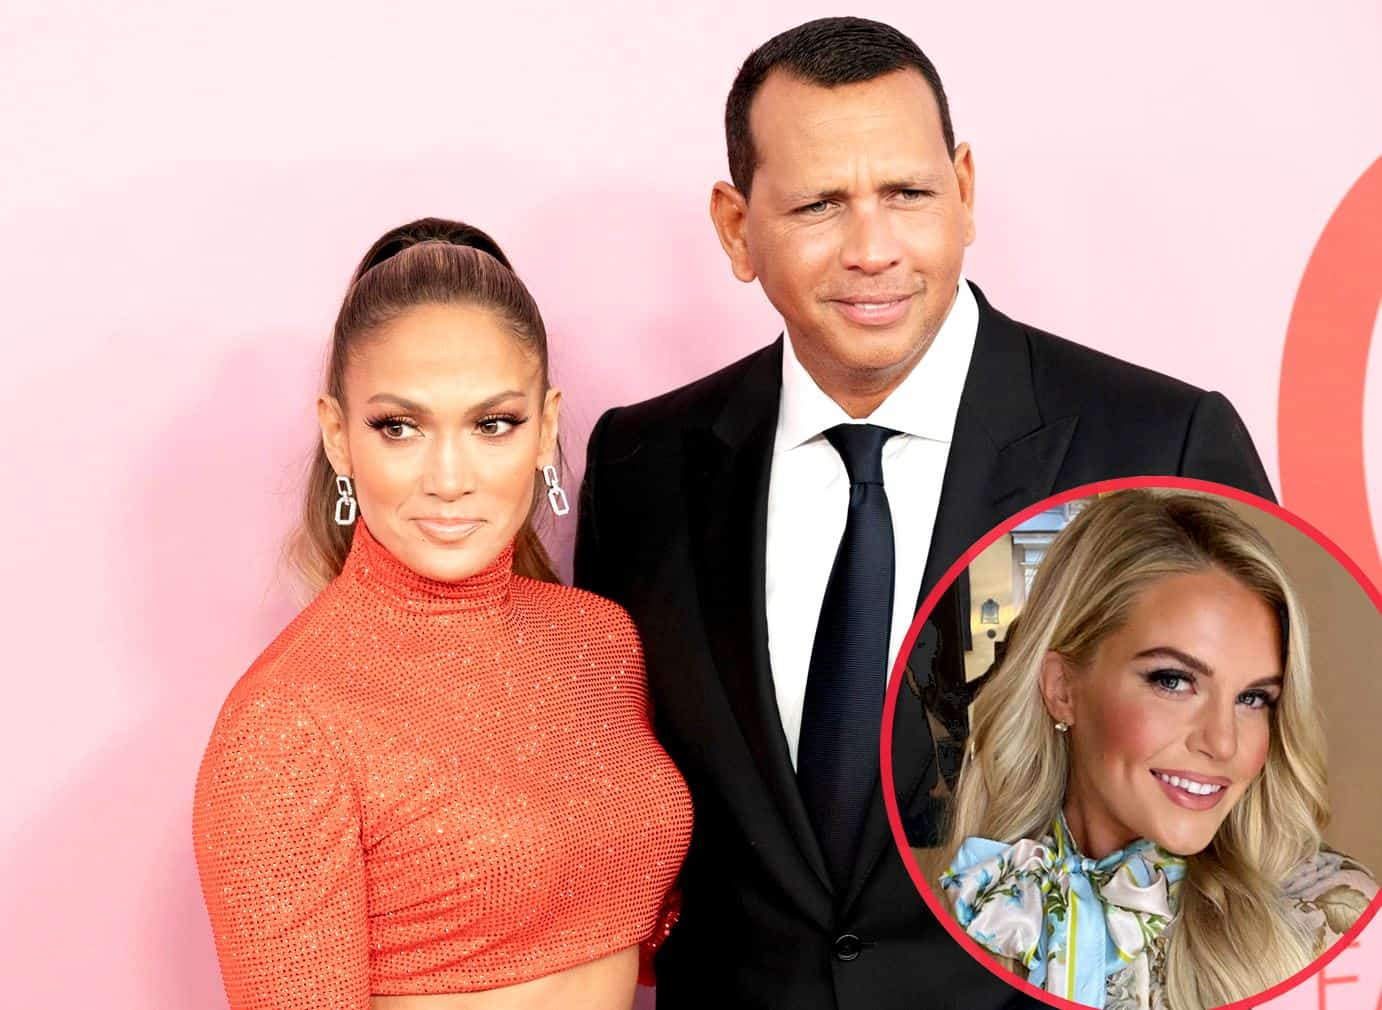 Jennifer Lopez and A-Rod Split After 4 Years of Dating Amid Rumors Claiming Ex-MLB Player Engaged in Inappropriate Relationship With Southern Charm's Madison LeCroy